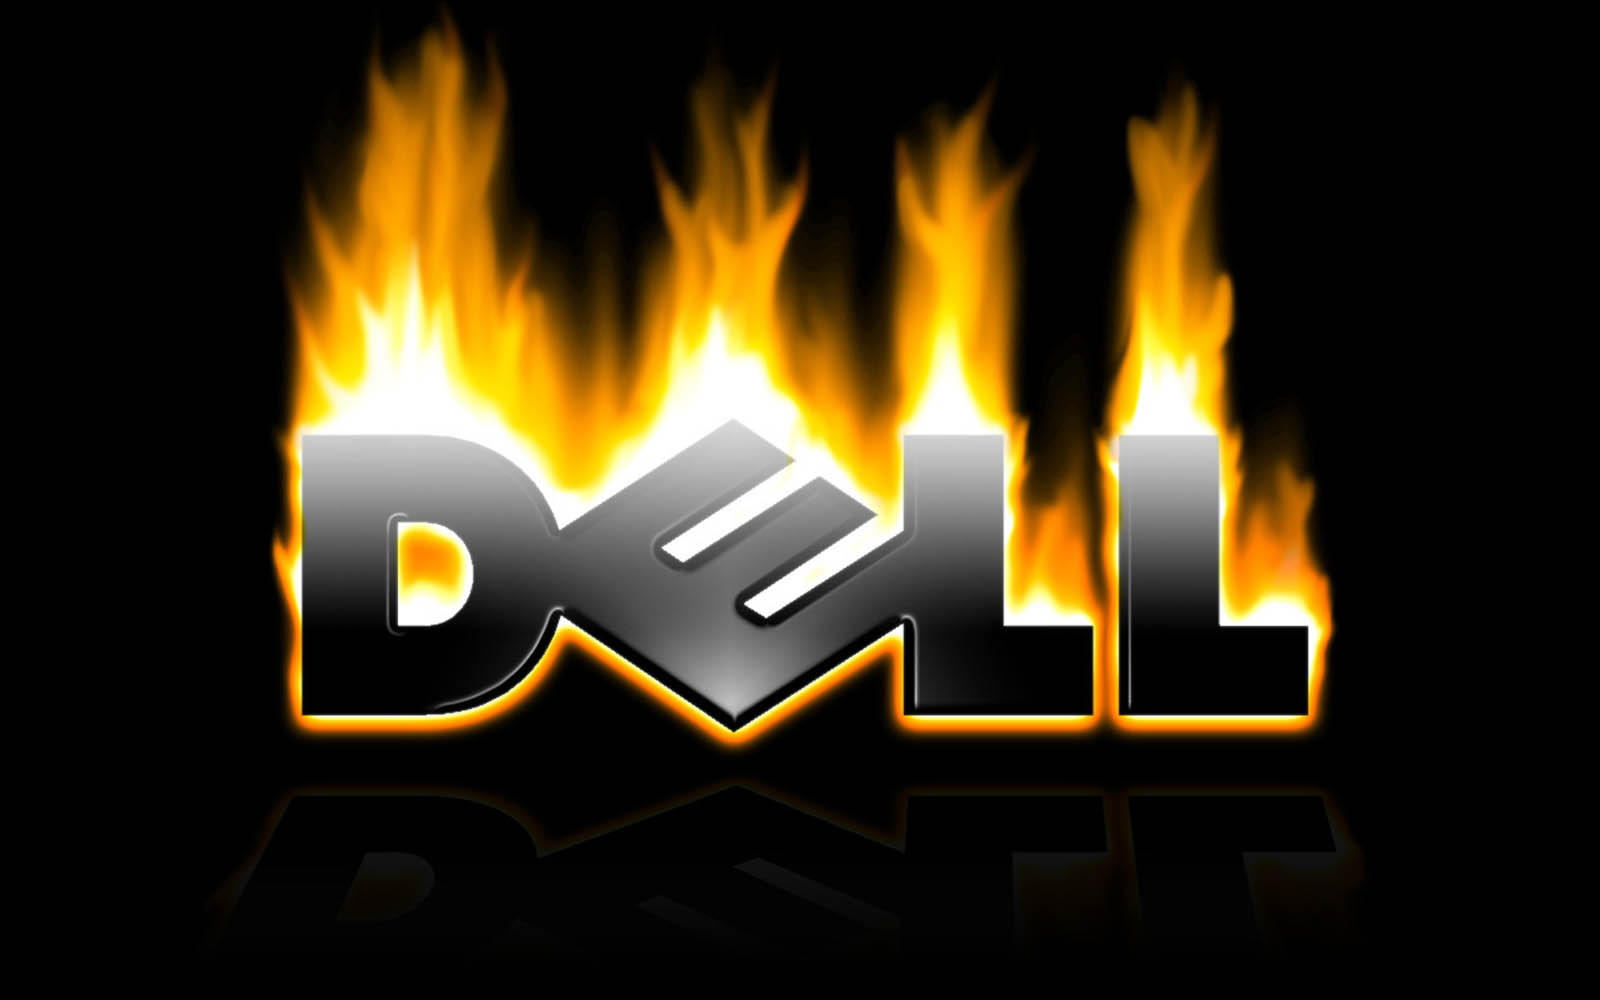 Dell Desktop Background wallpaper Collection of Backgrounds For